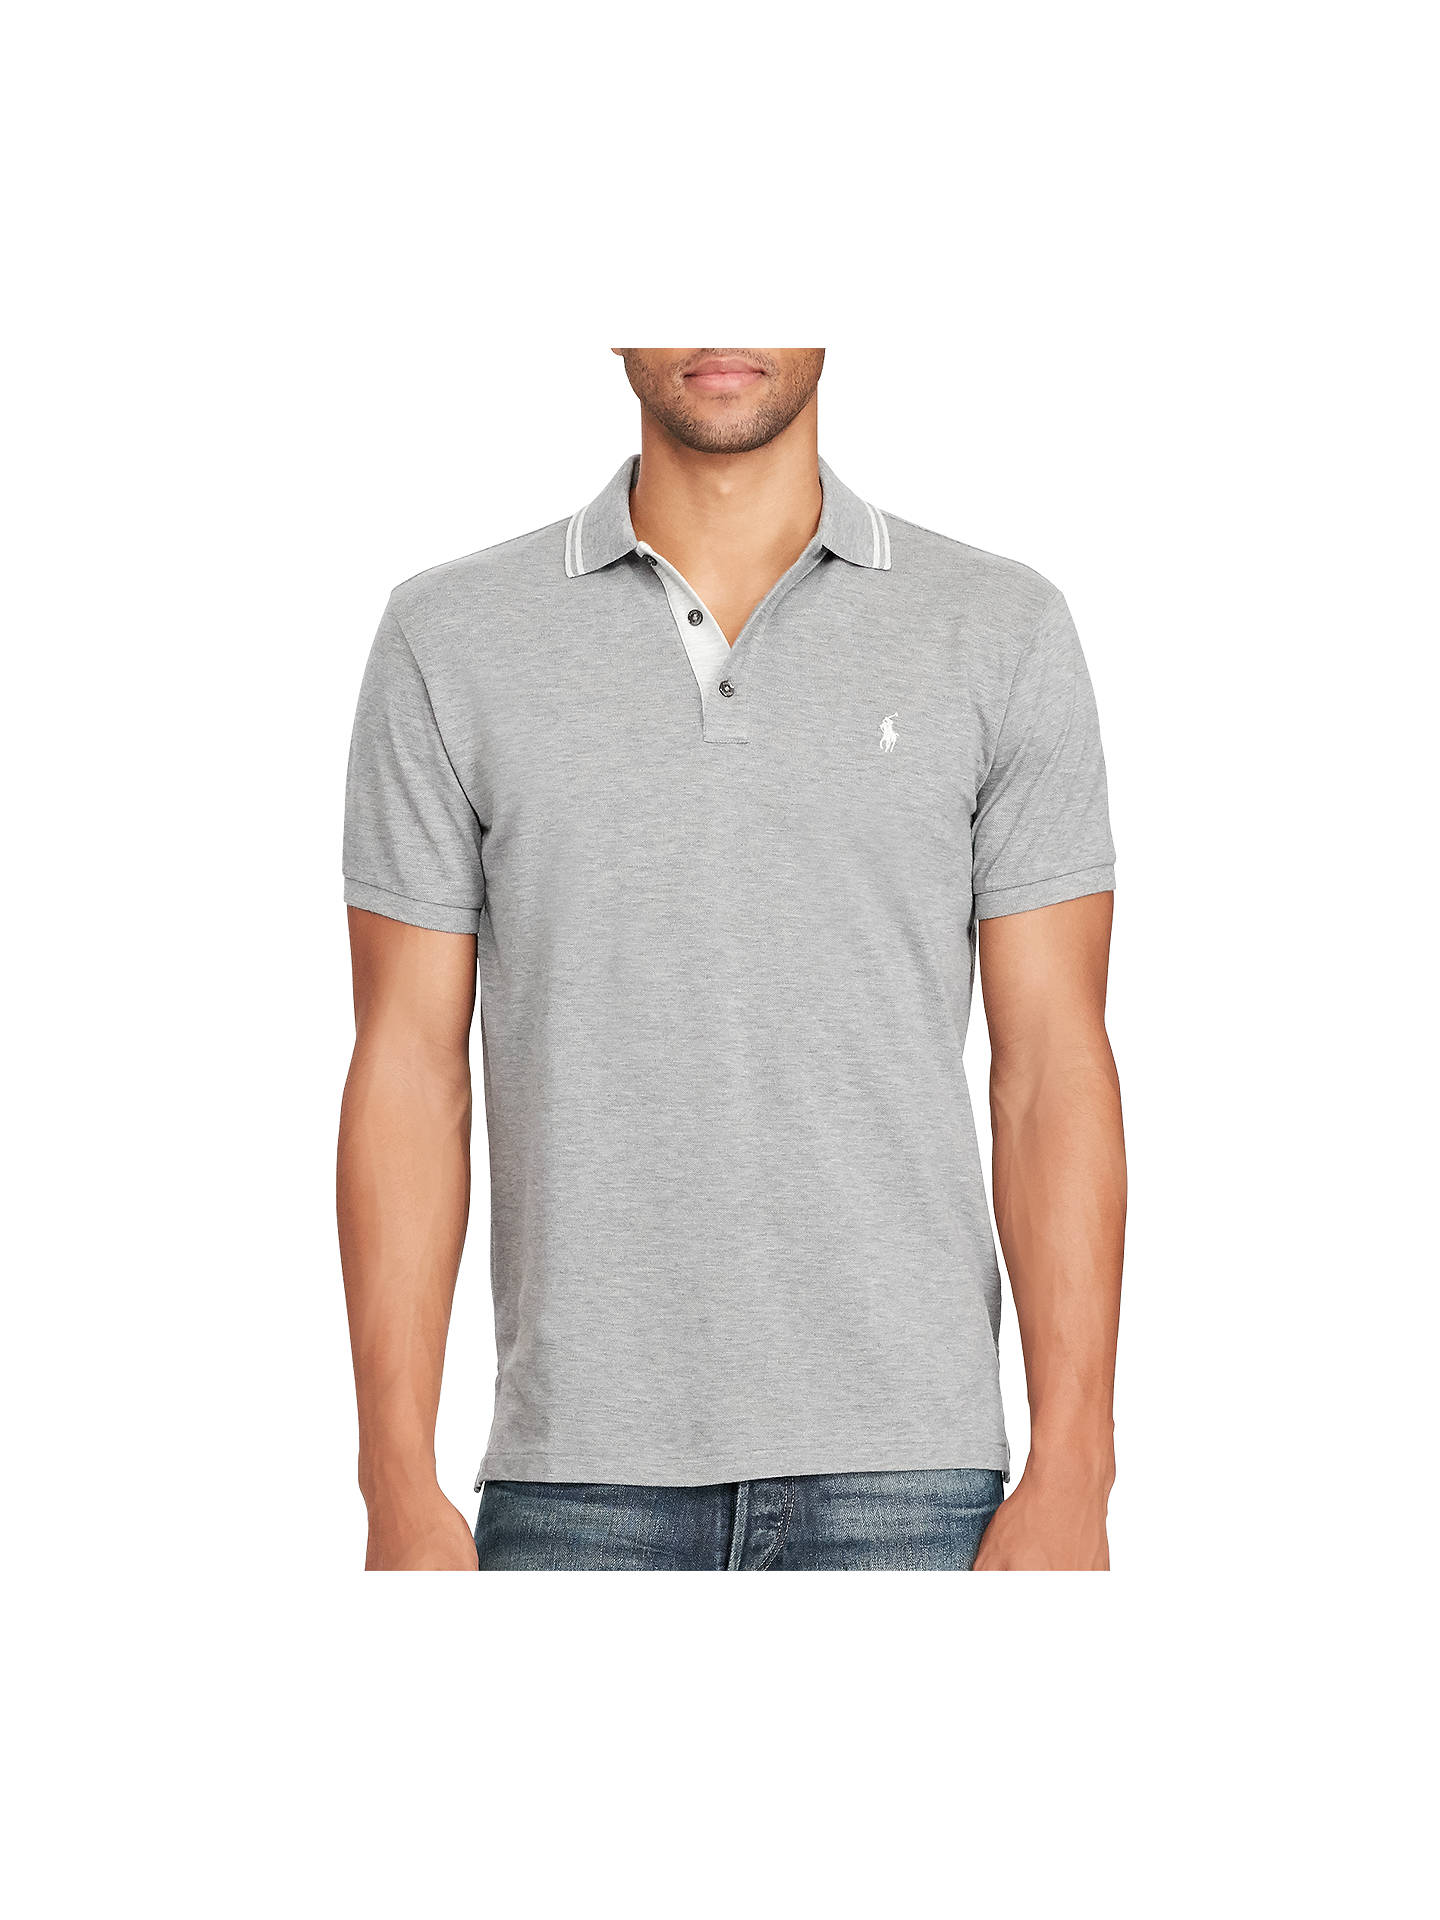 054d124eebe47 Polo Ralph Lauren Custom-Fit Cotton Mesh Polo Shirt at John Lewis ...